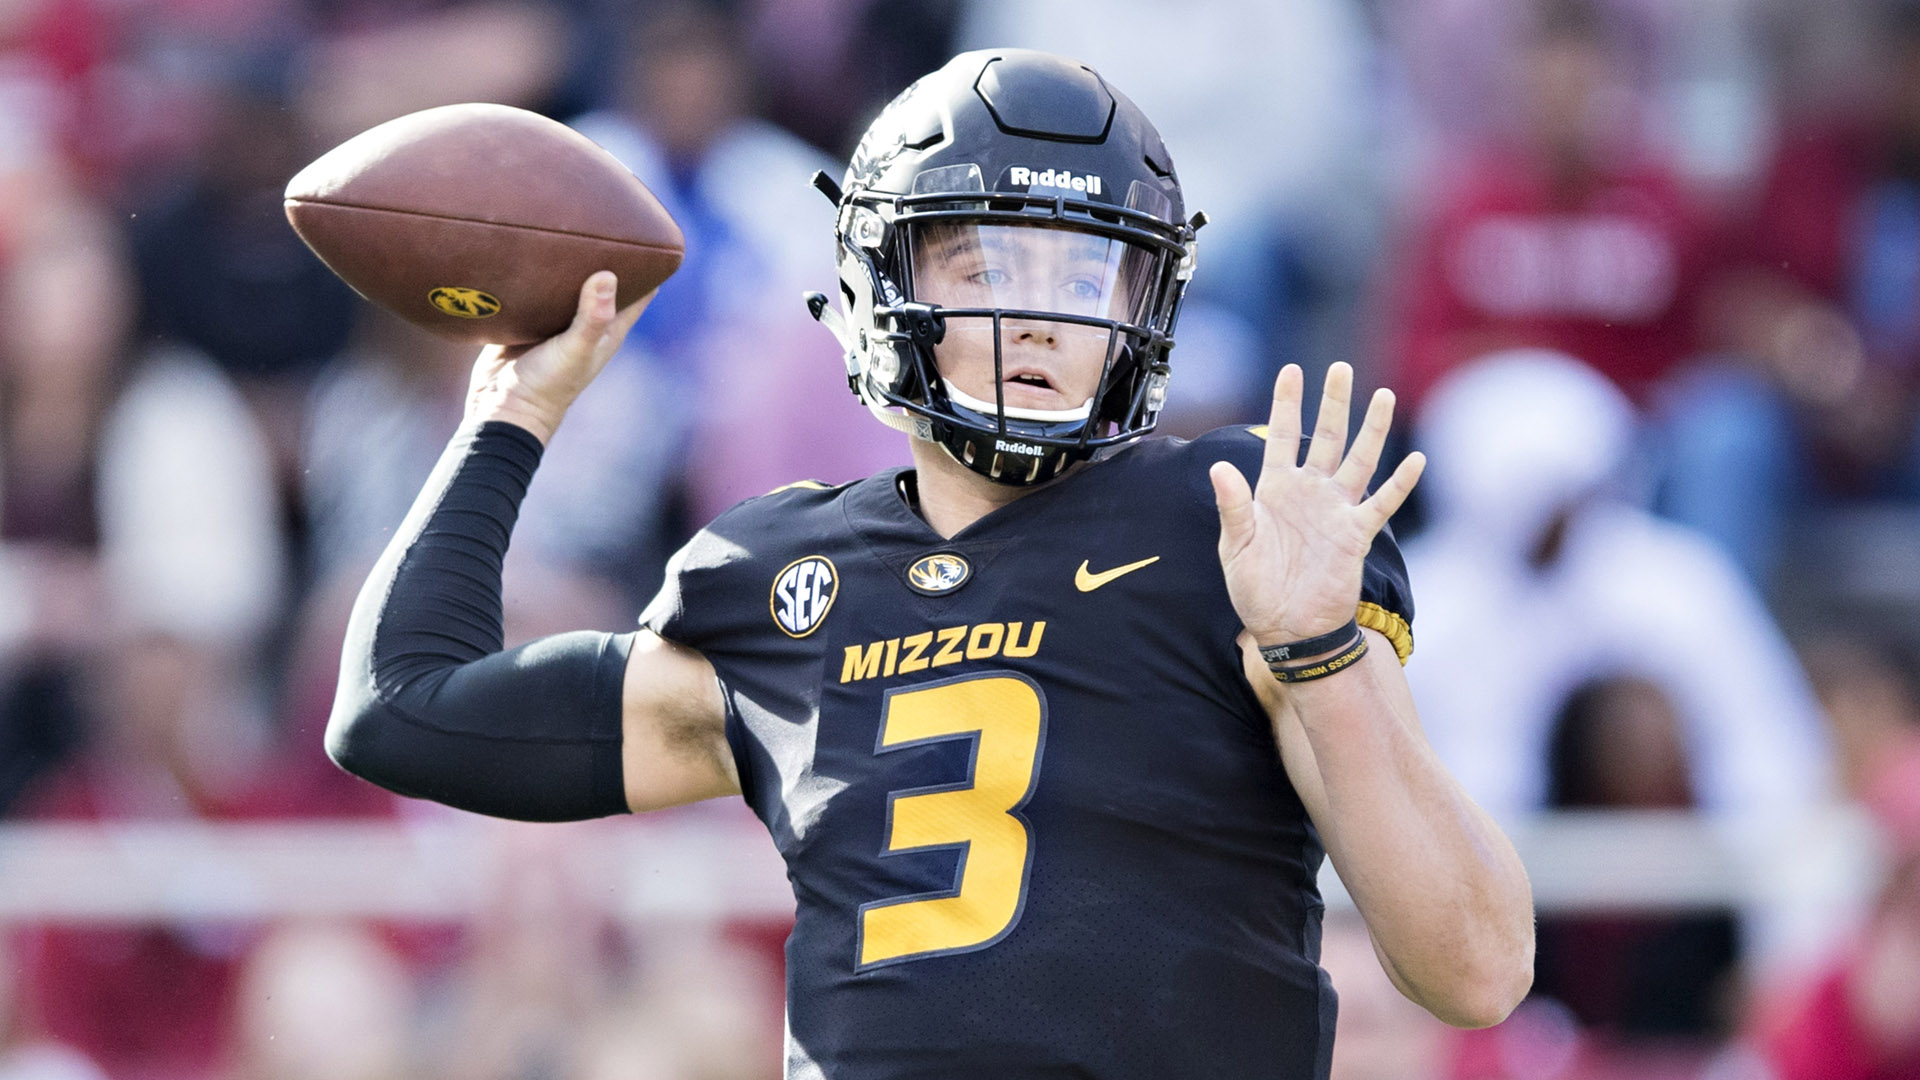 NFL Draft 2019: 5 overrated prospects, starting with a first-round QB